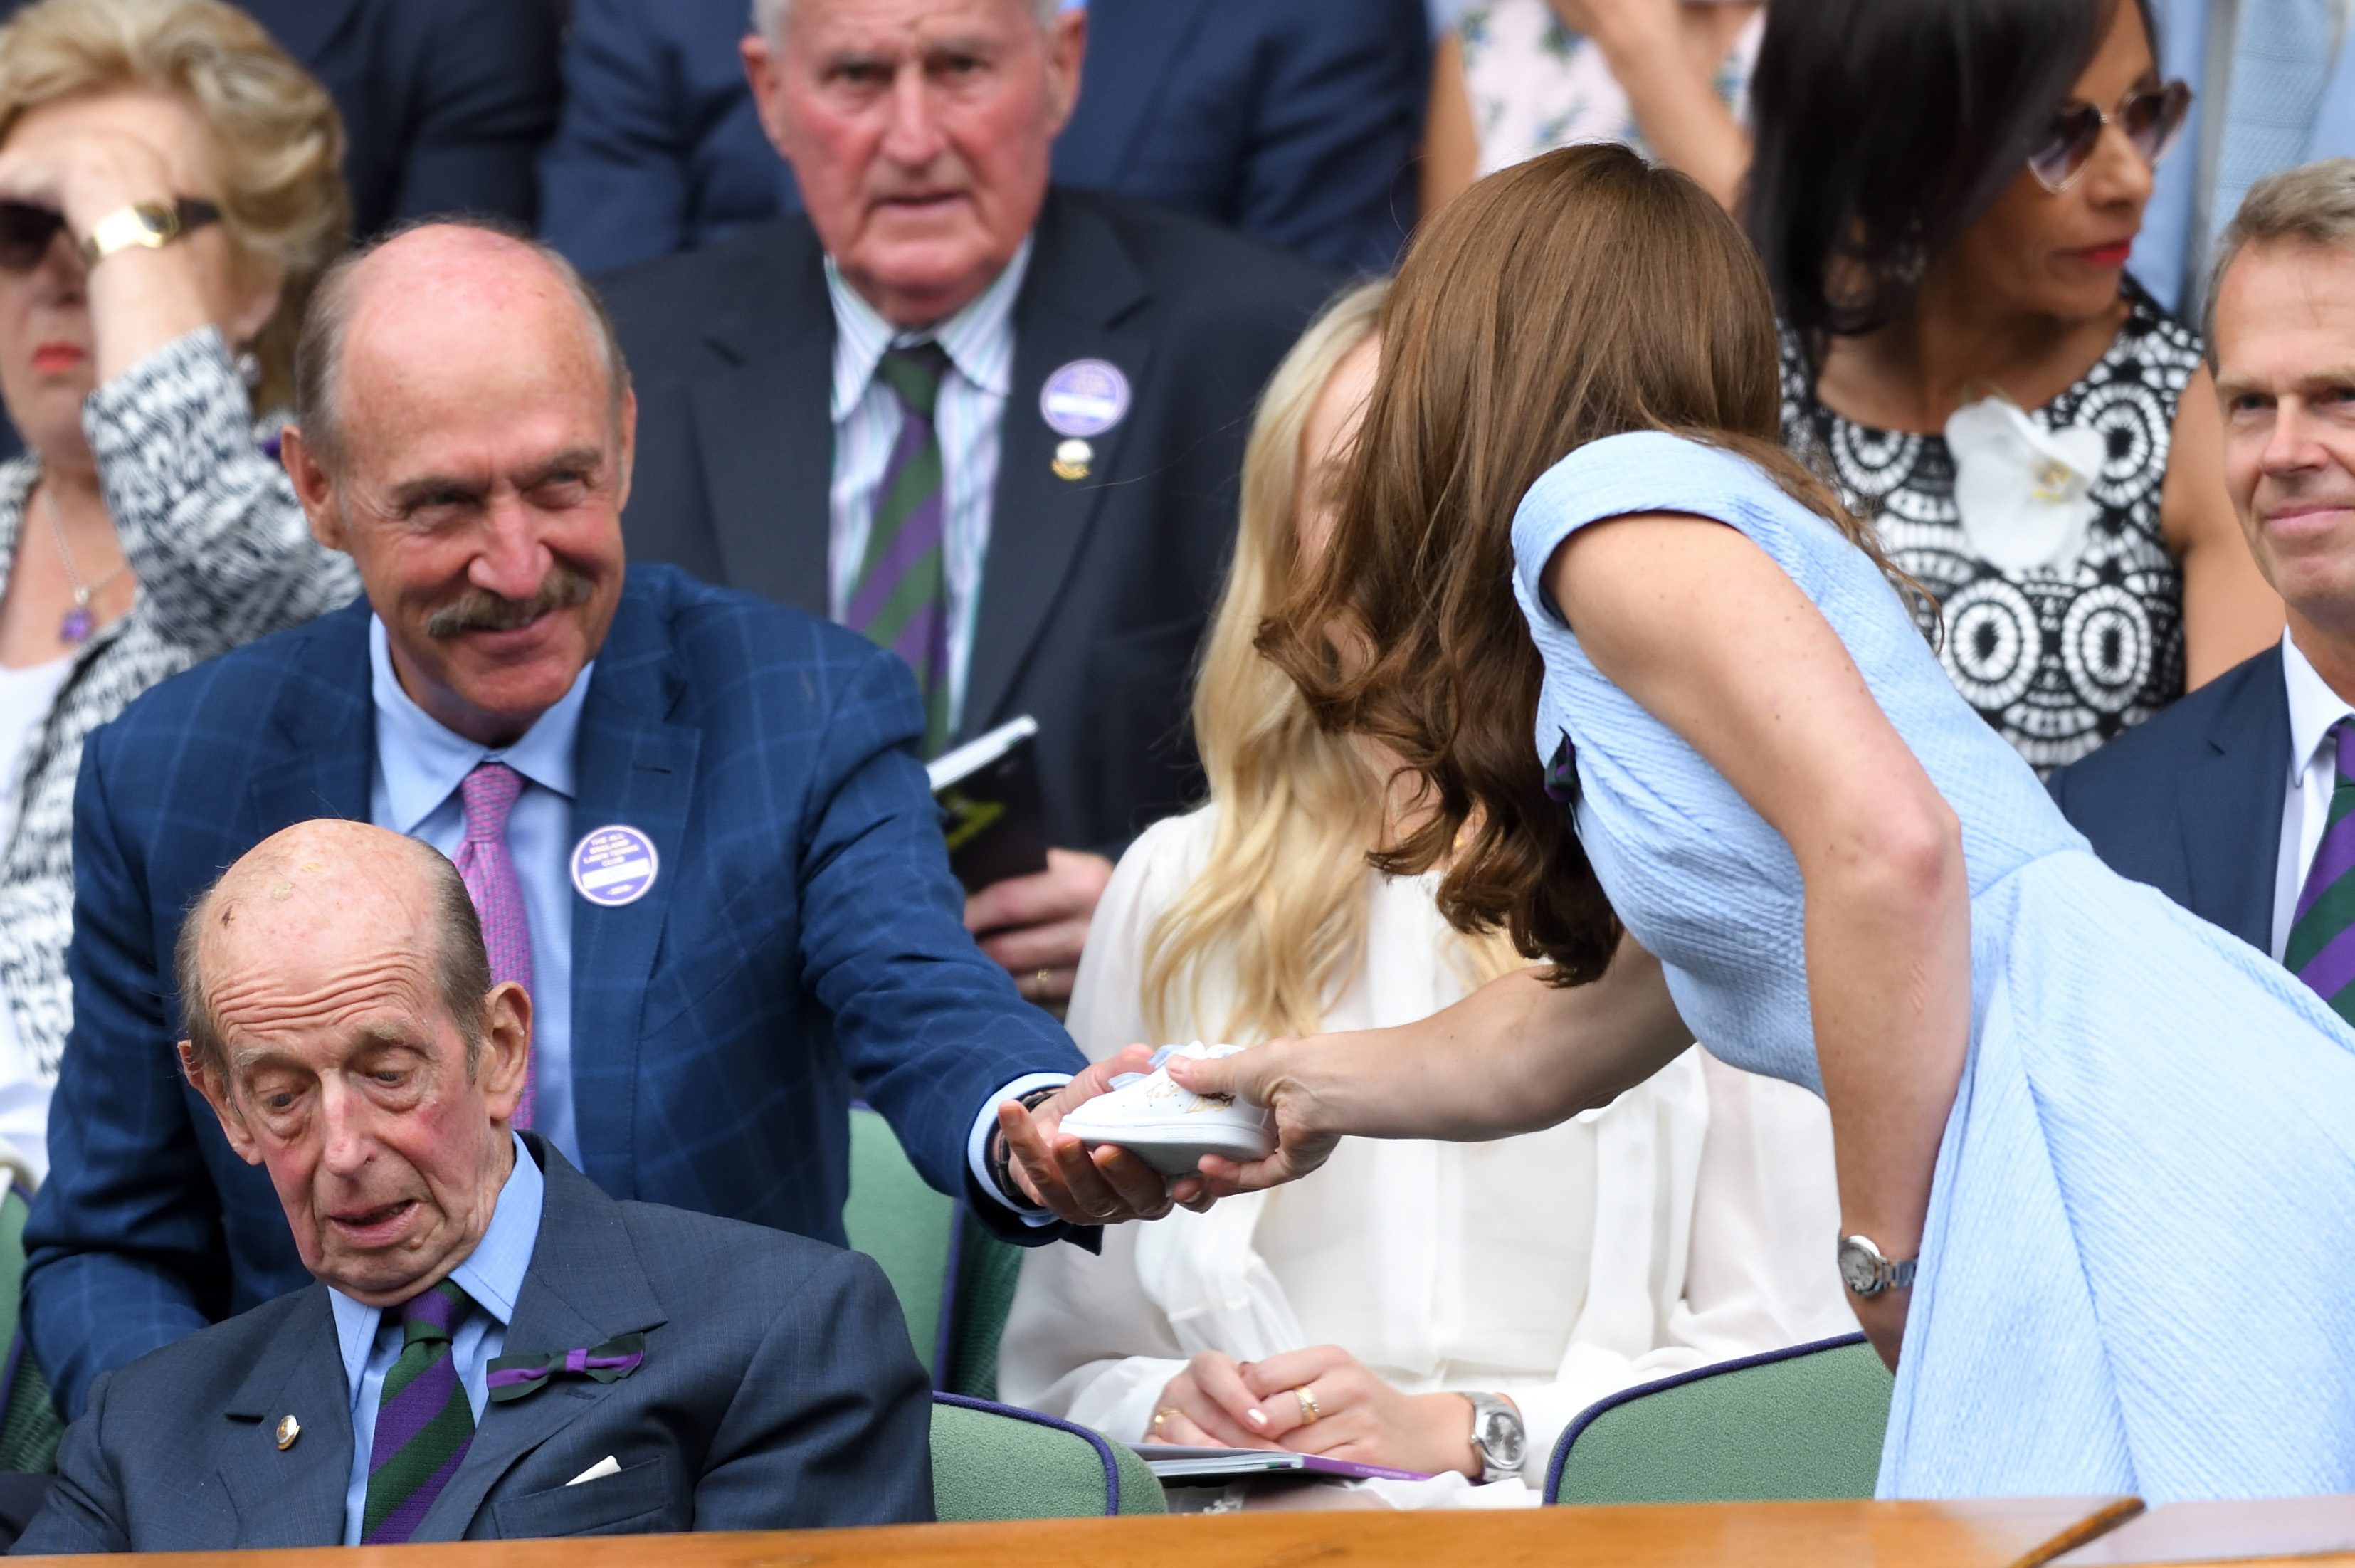 LONDON, ENGLAND - JULY 14: Stan Smith gives Catherine, Duchess of Cambridge a signed baby 'Stan Smith' trainer in the Royal Box during Men's Finals Day of the Wimbledon Tennis Championships at All England Lawn Tennis and Croquet Club on July 14, 2019 in London, England. (Photo by Karwai Tang/Getty Images)